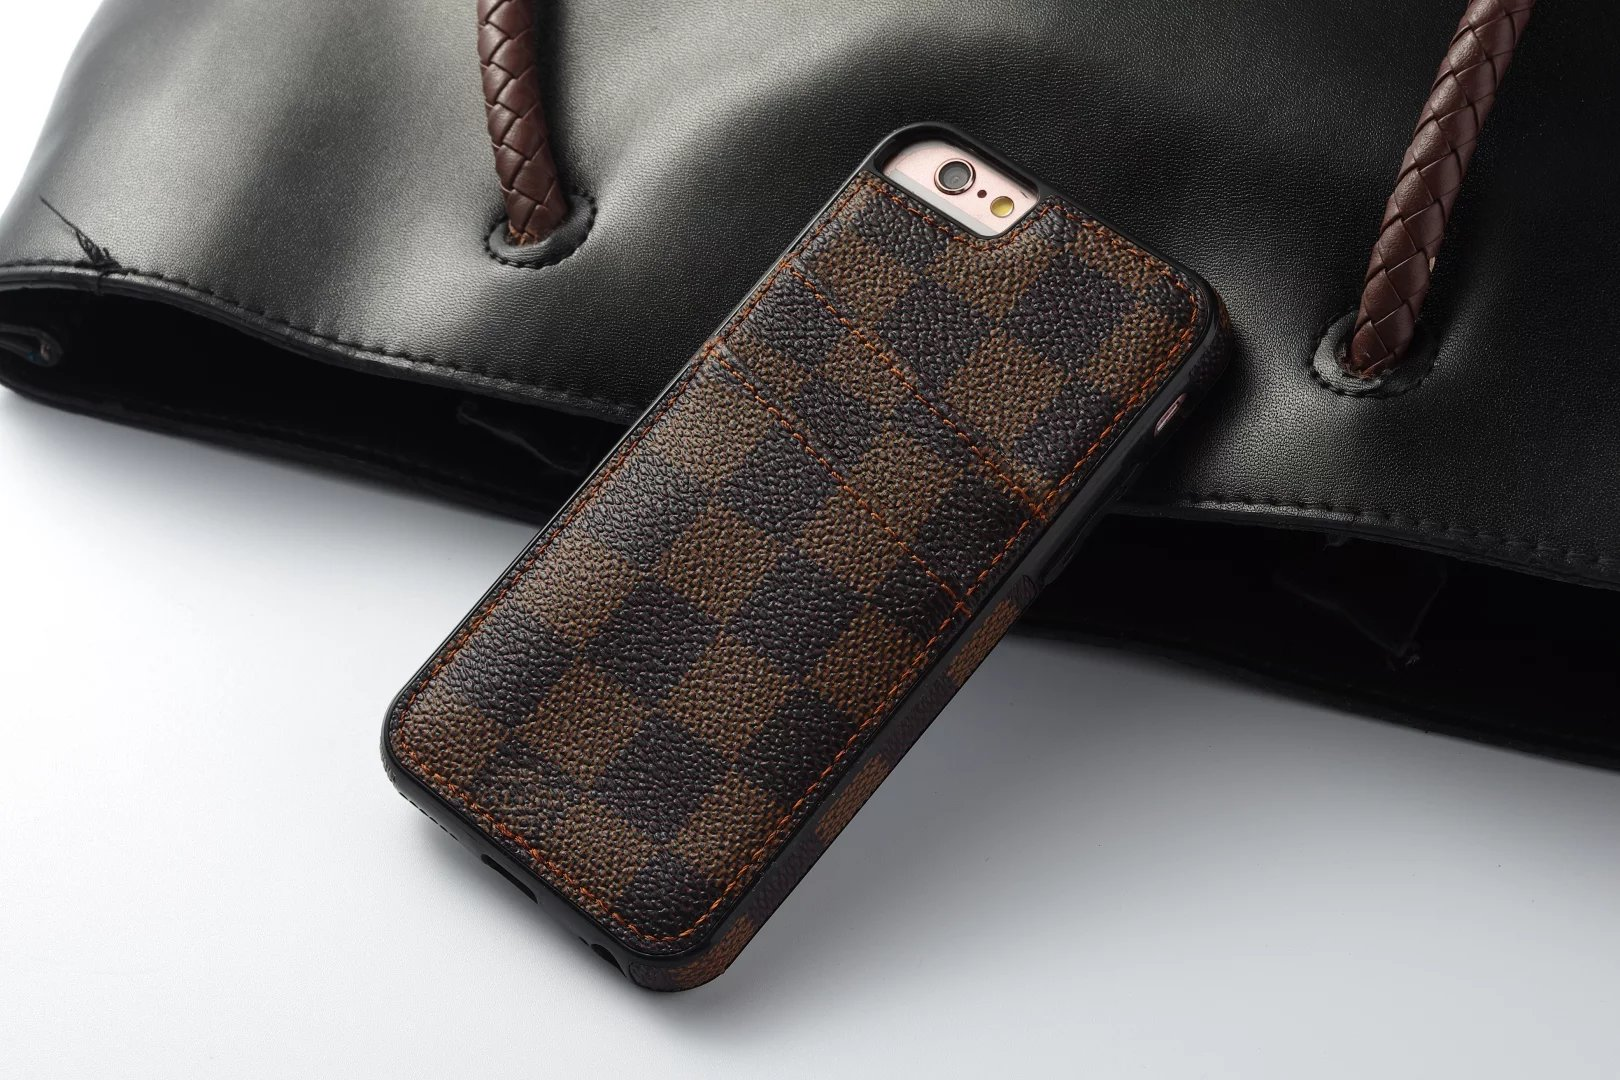 handyhülle iphone selbst gestalten individuelle iphone hülle Louis Vuitton iphone6s plus hülle handy ca6s bedrucken las6sn cover 6slber machen iphone 6s Plus hardca6s elber gestalten handytasche iphone 6s Plus  htc handy hüllen beste iphone 6s Plus hülle